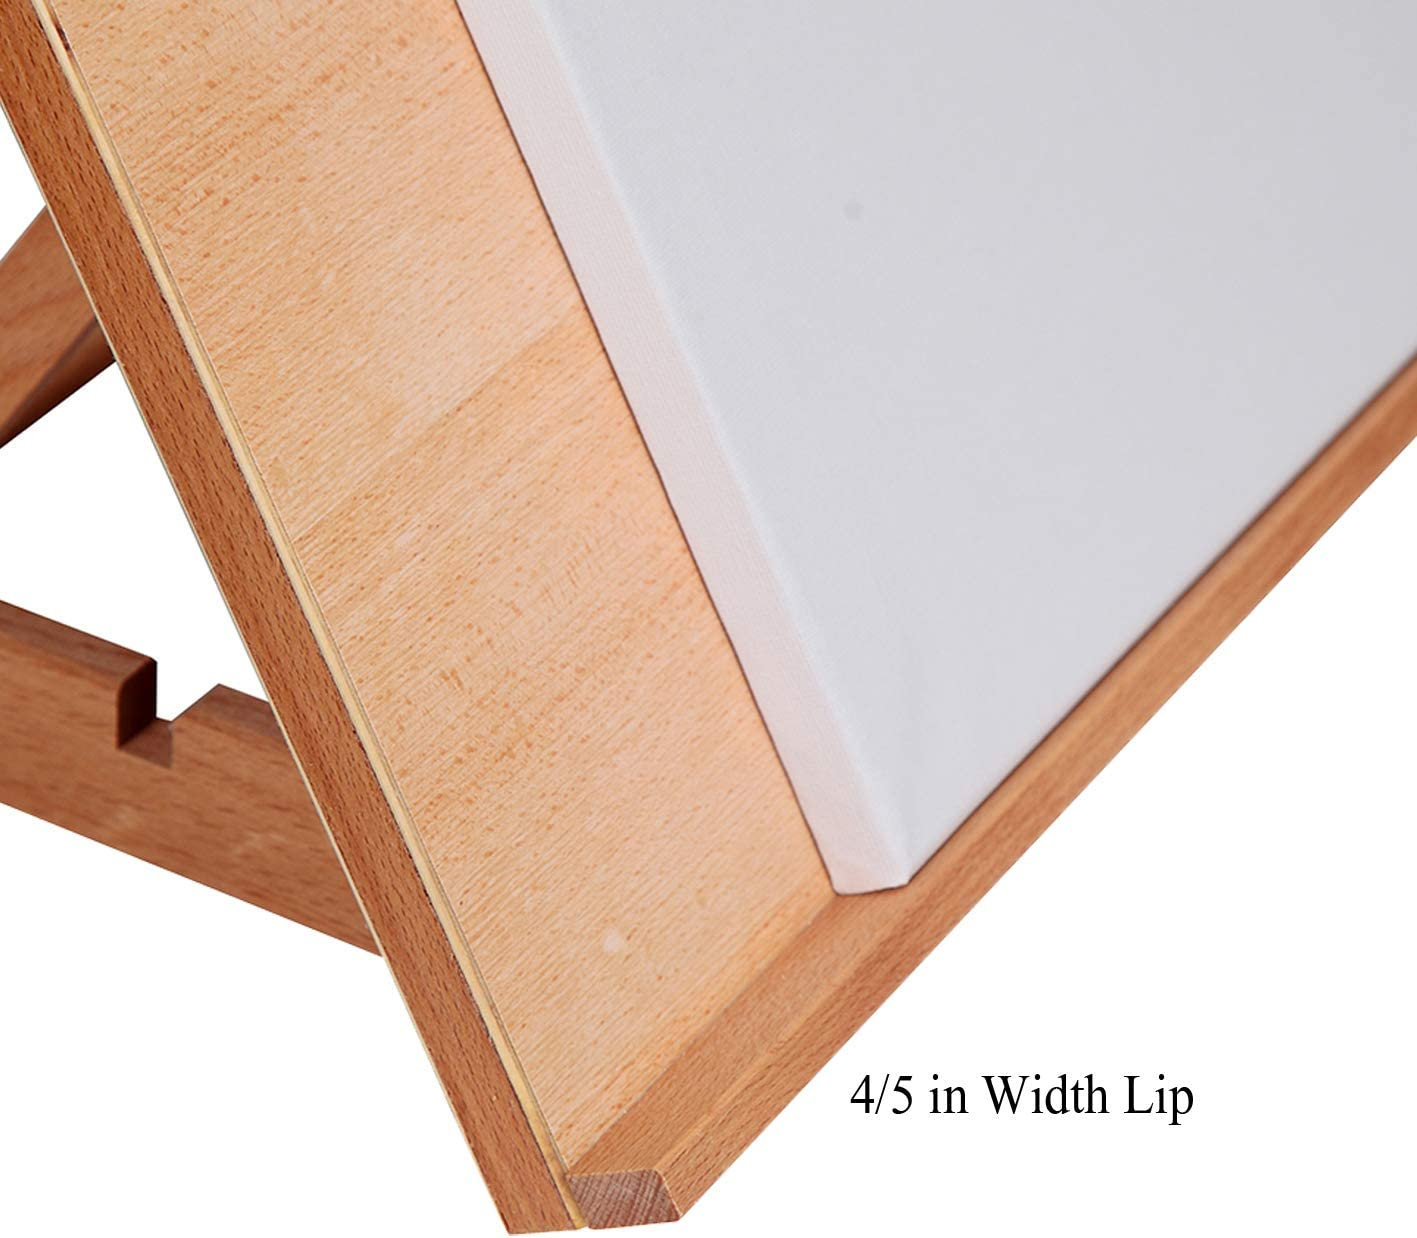 17 1//10 Inches by 12 1//2 Inches Falling in Art 4-Position Wood Drafting Table Easel Drawing and Sketching Board